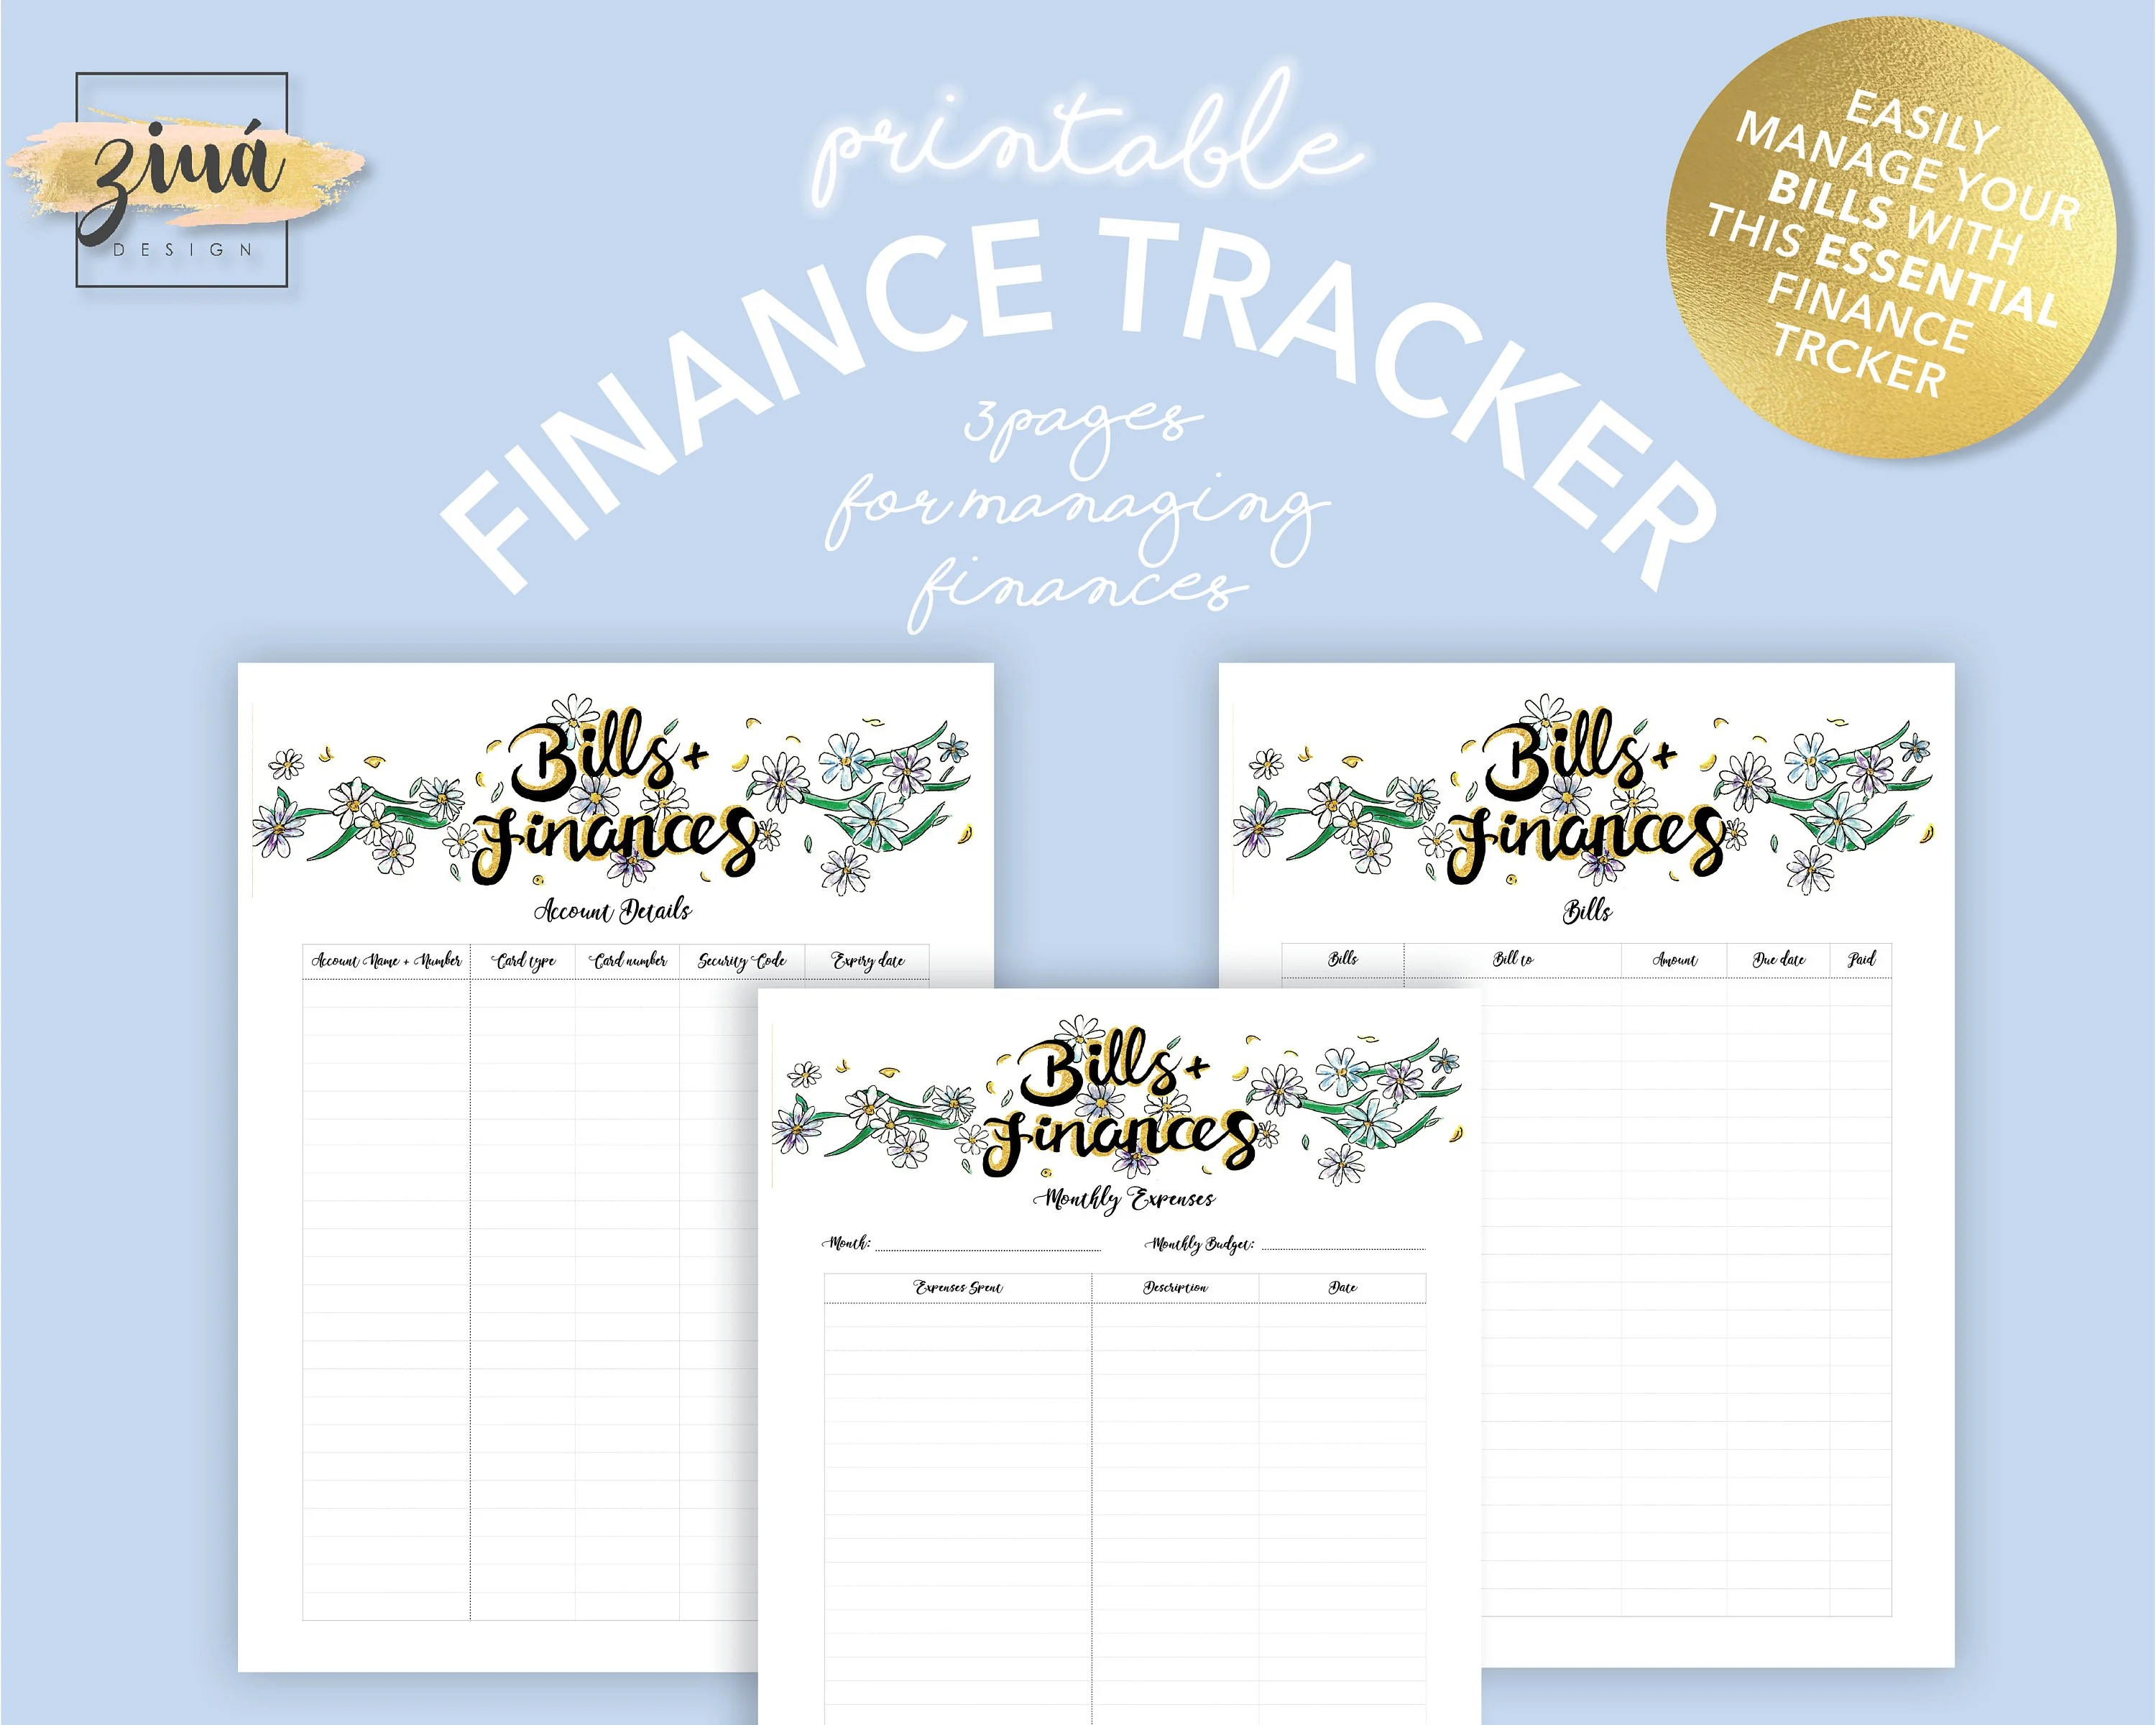 Bills Tracker Finance Tracker Money Tracker Expense Etsy